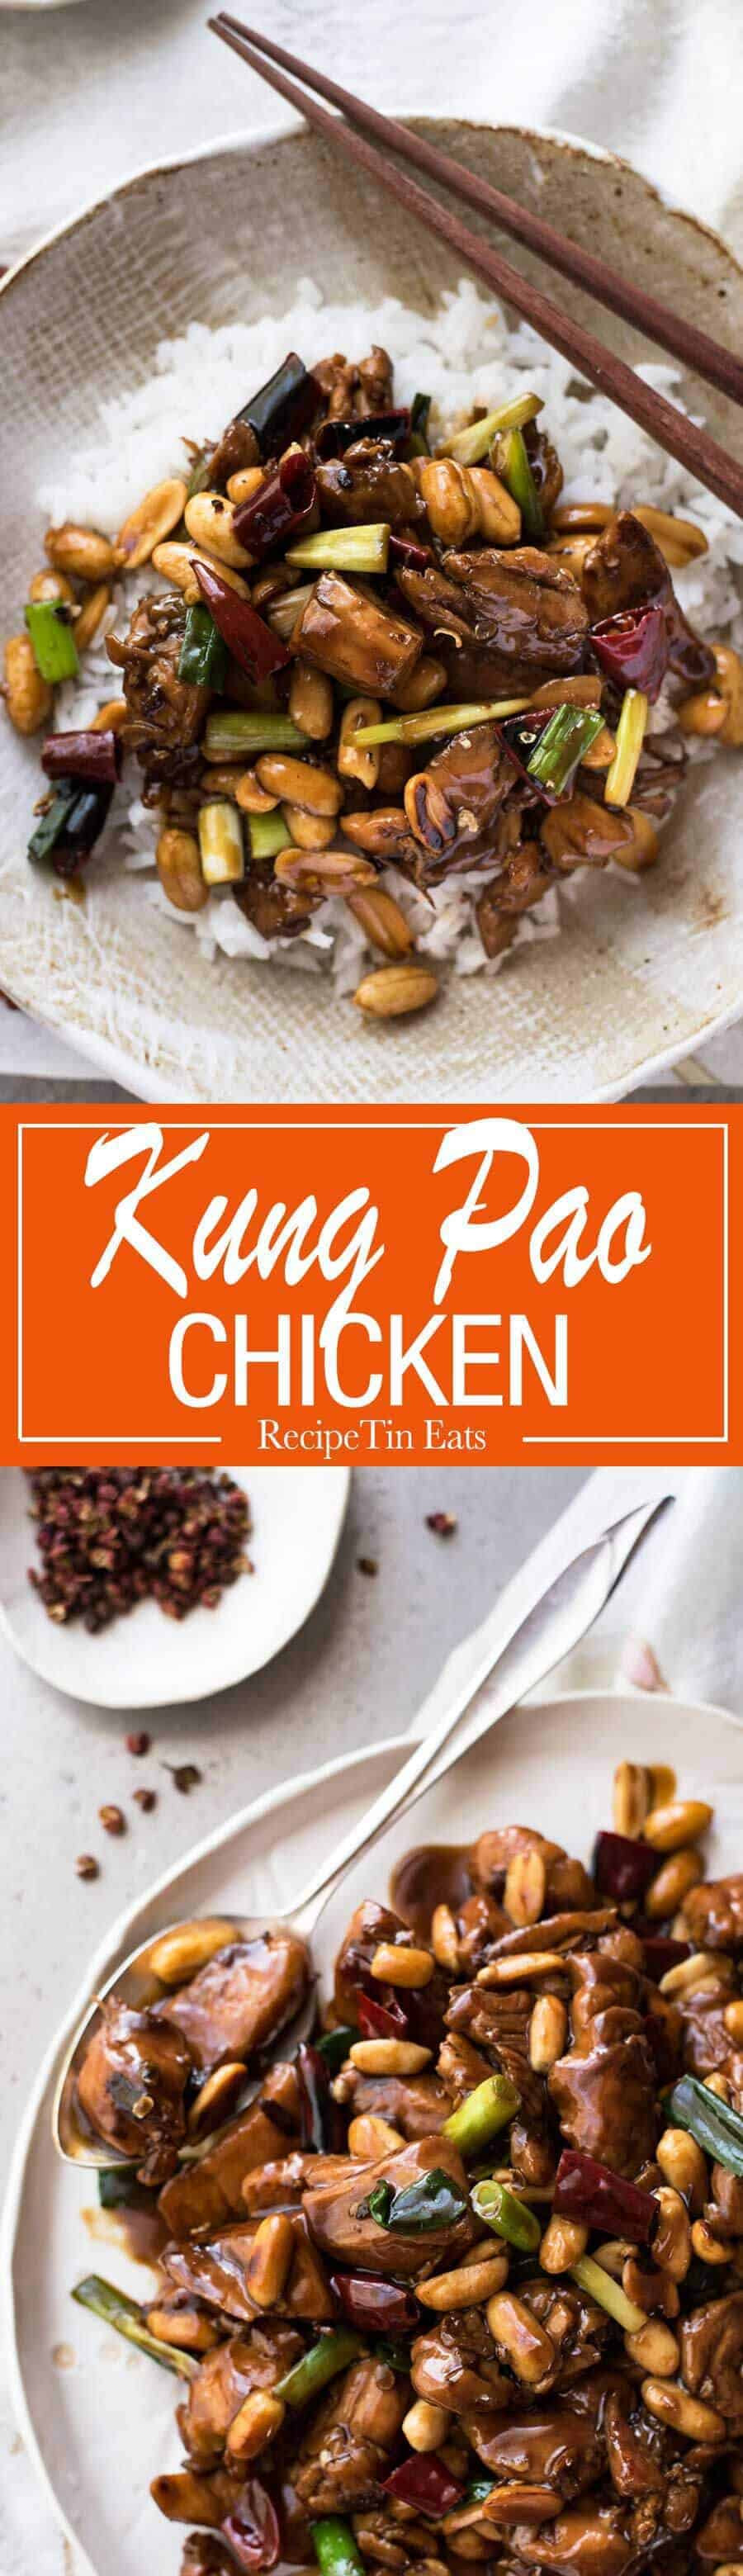 Kung Pao Chicken - Made right with a real restaurant quality sauce! www.recipetineats.com